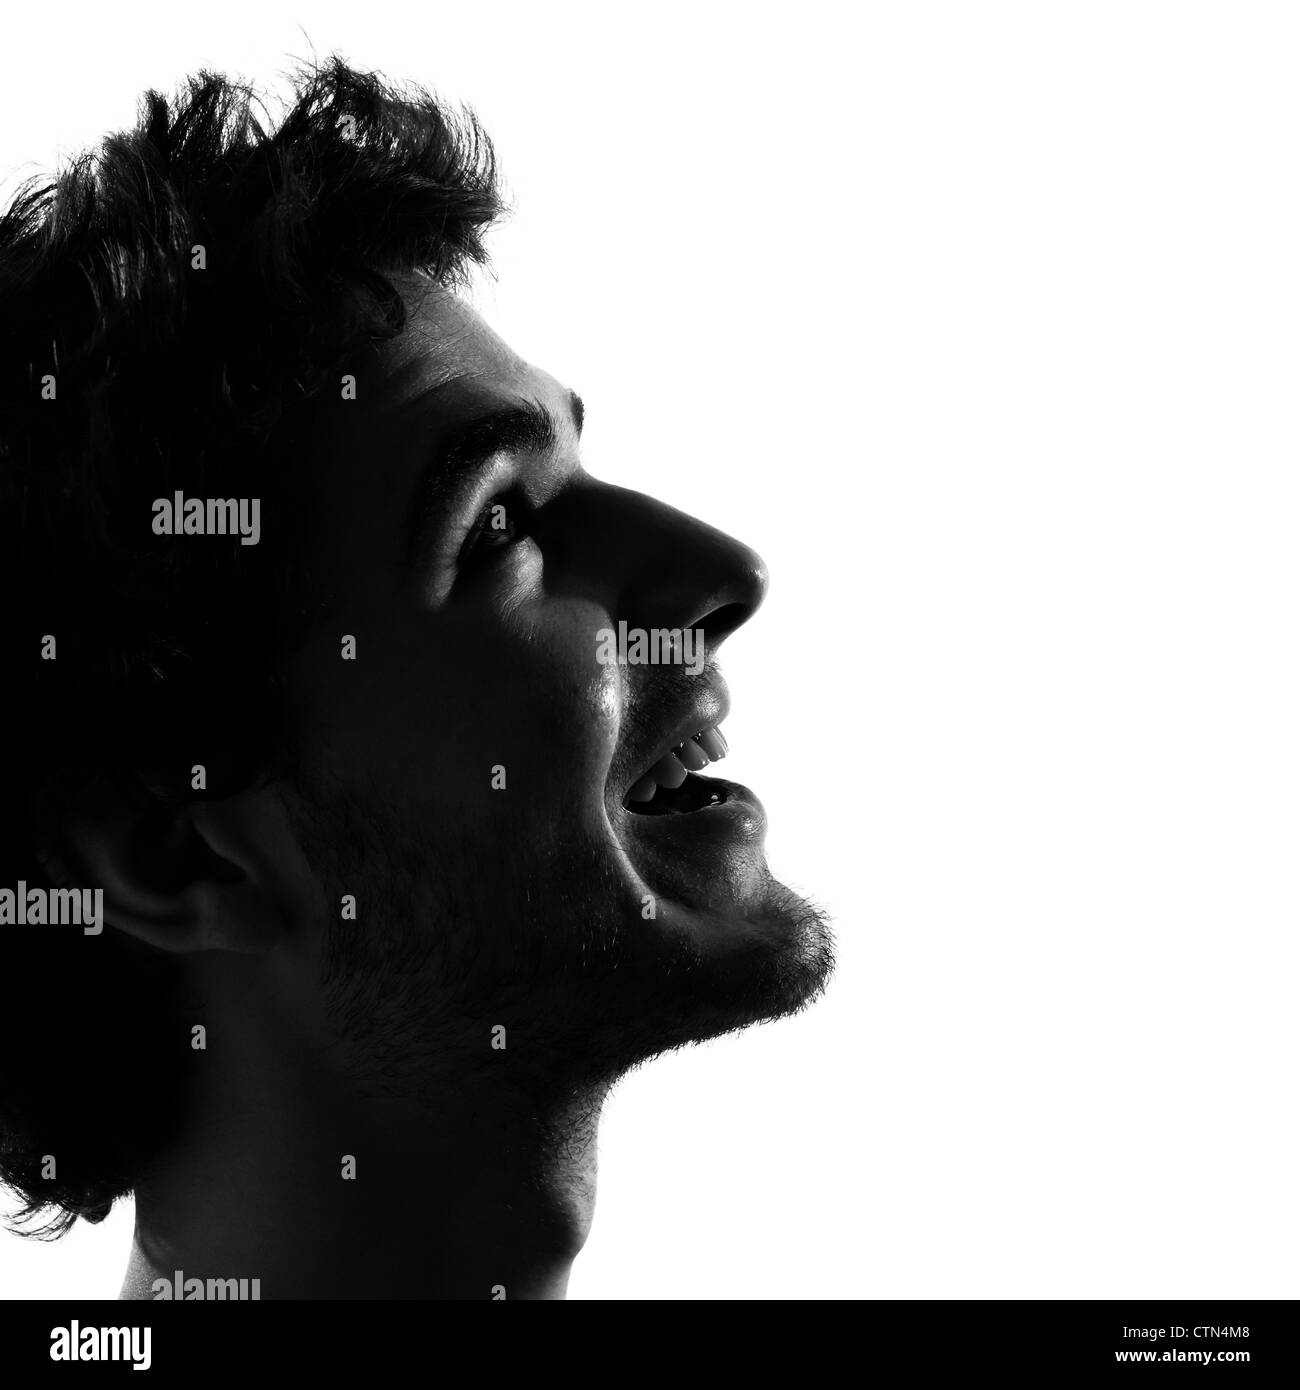 young man looking up smiling happy portrait silhouette in studio isolated on white background - Stock Image